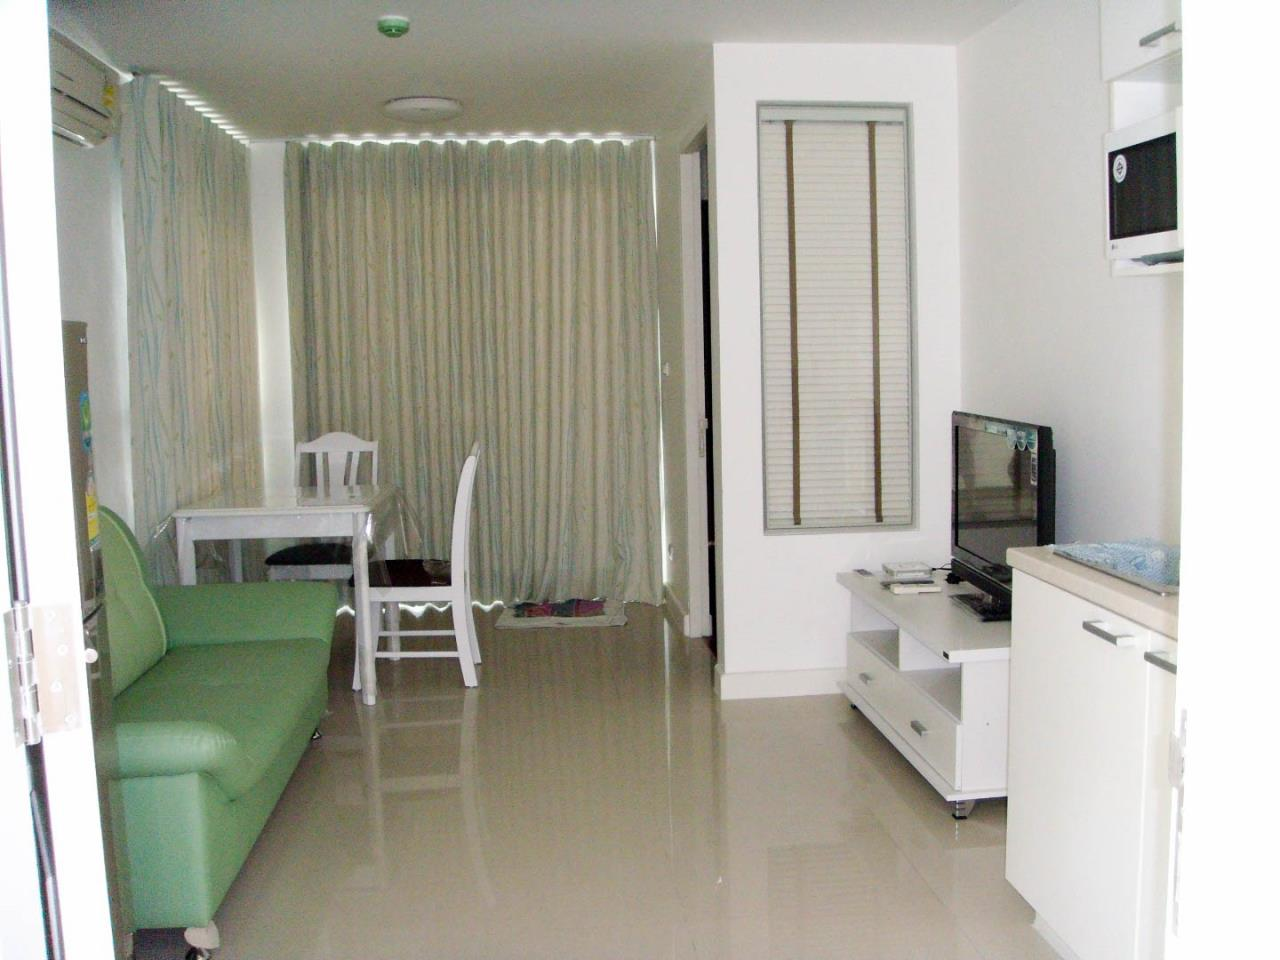 RE/MAX Properties Agency's 1 Bedroom 37 Sq.m for rent at Clover Thonglor 2